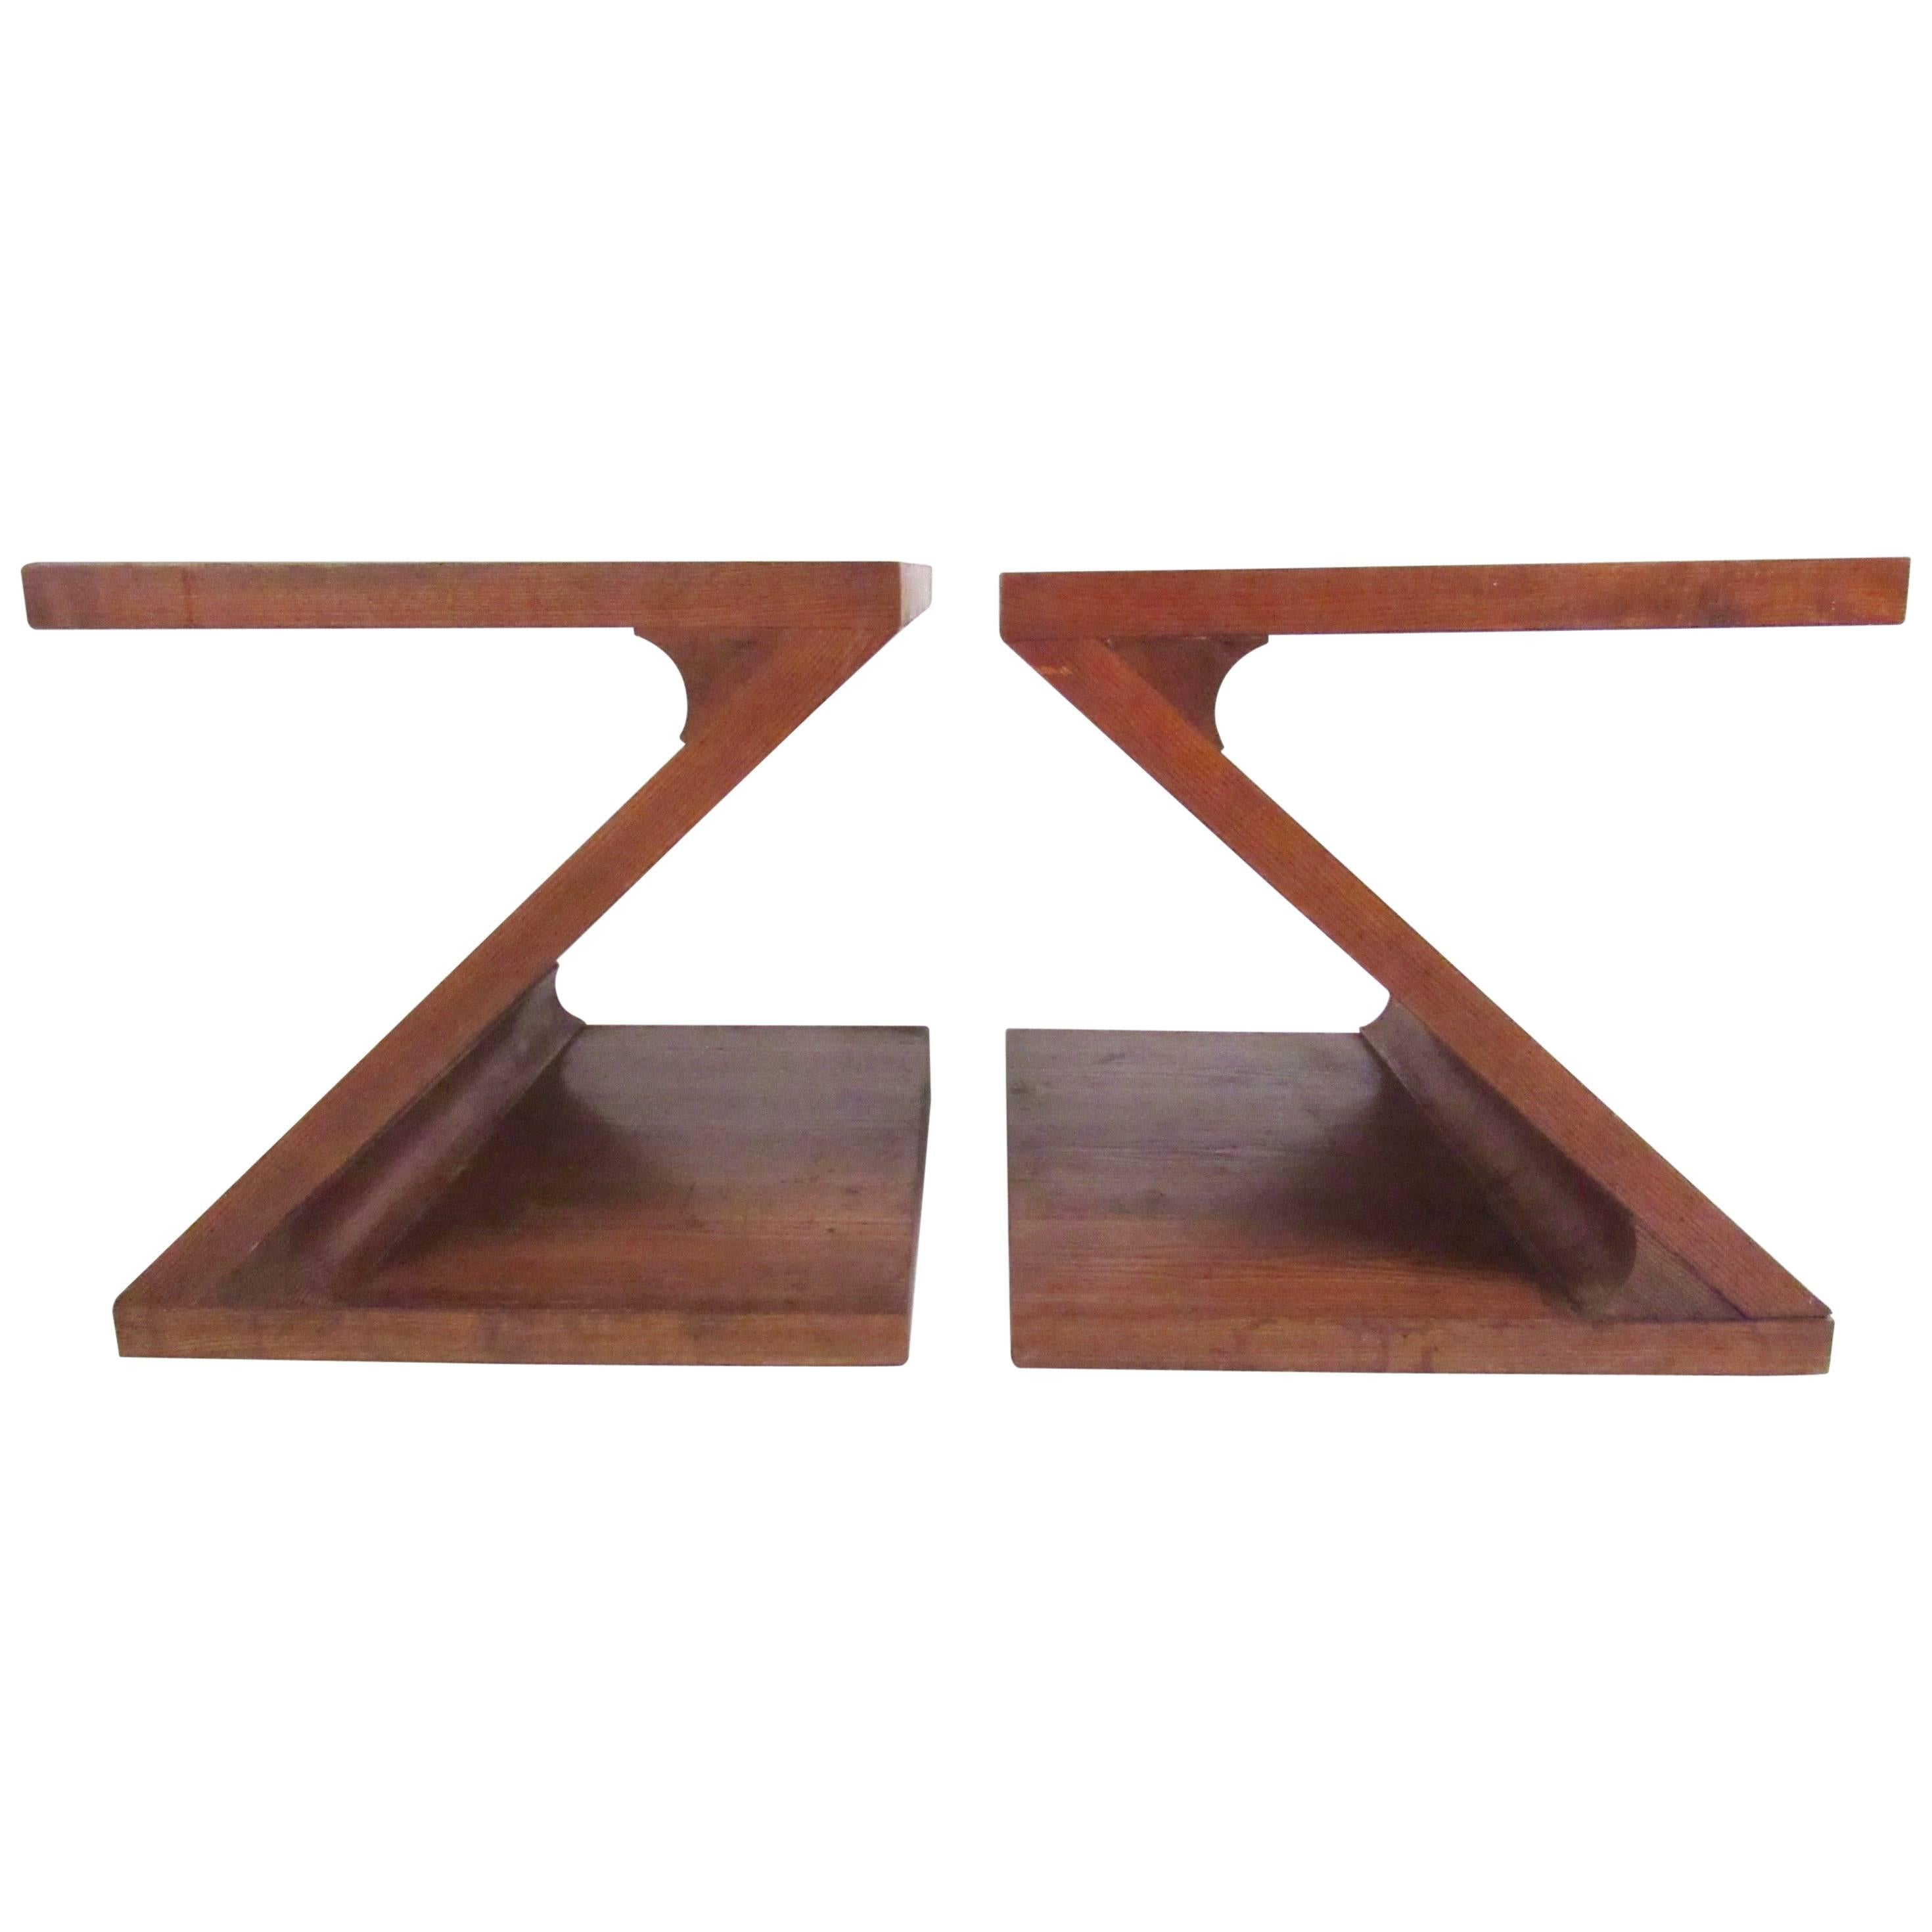 Pair of Vintage Z Shape End Tables by Lane